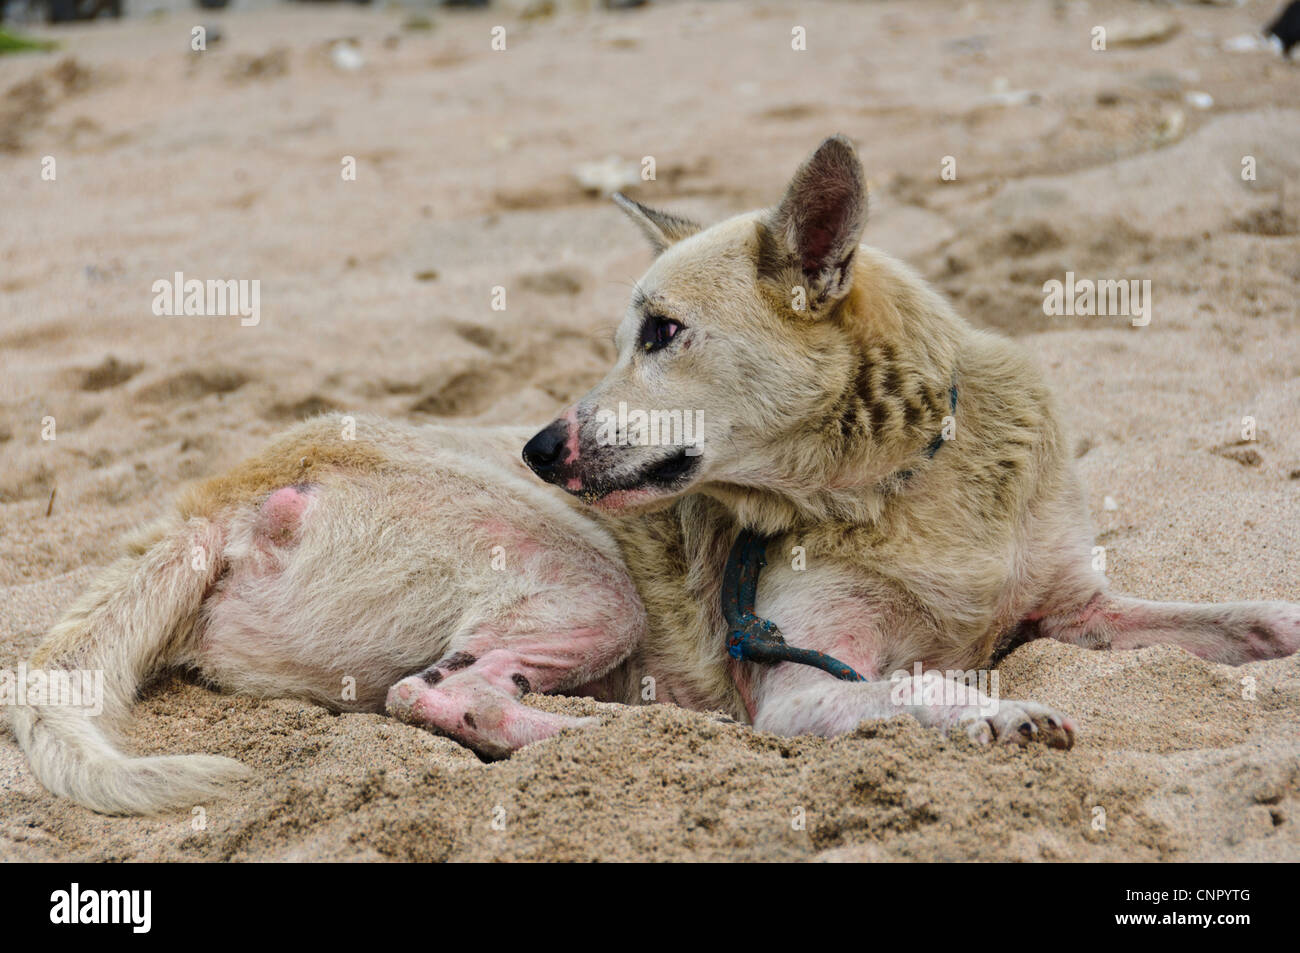 Cruelty to animals - sick dog suffering skin and eye disease lying at sand beach - Stock Image